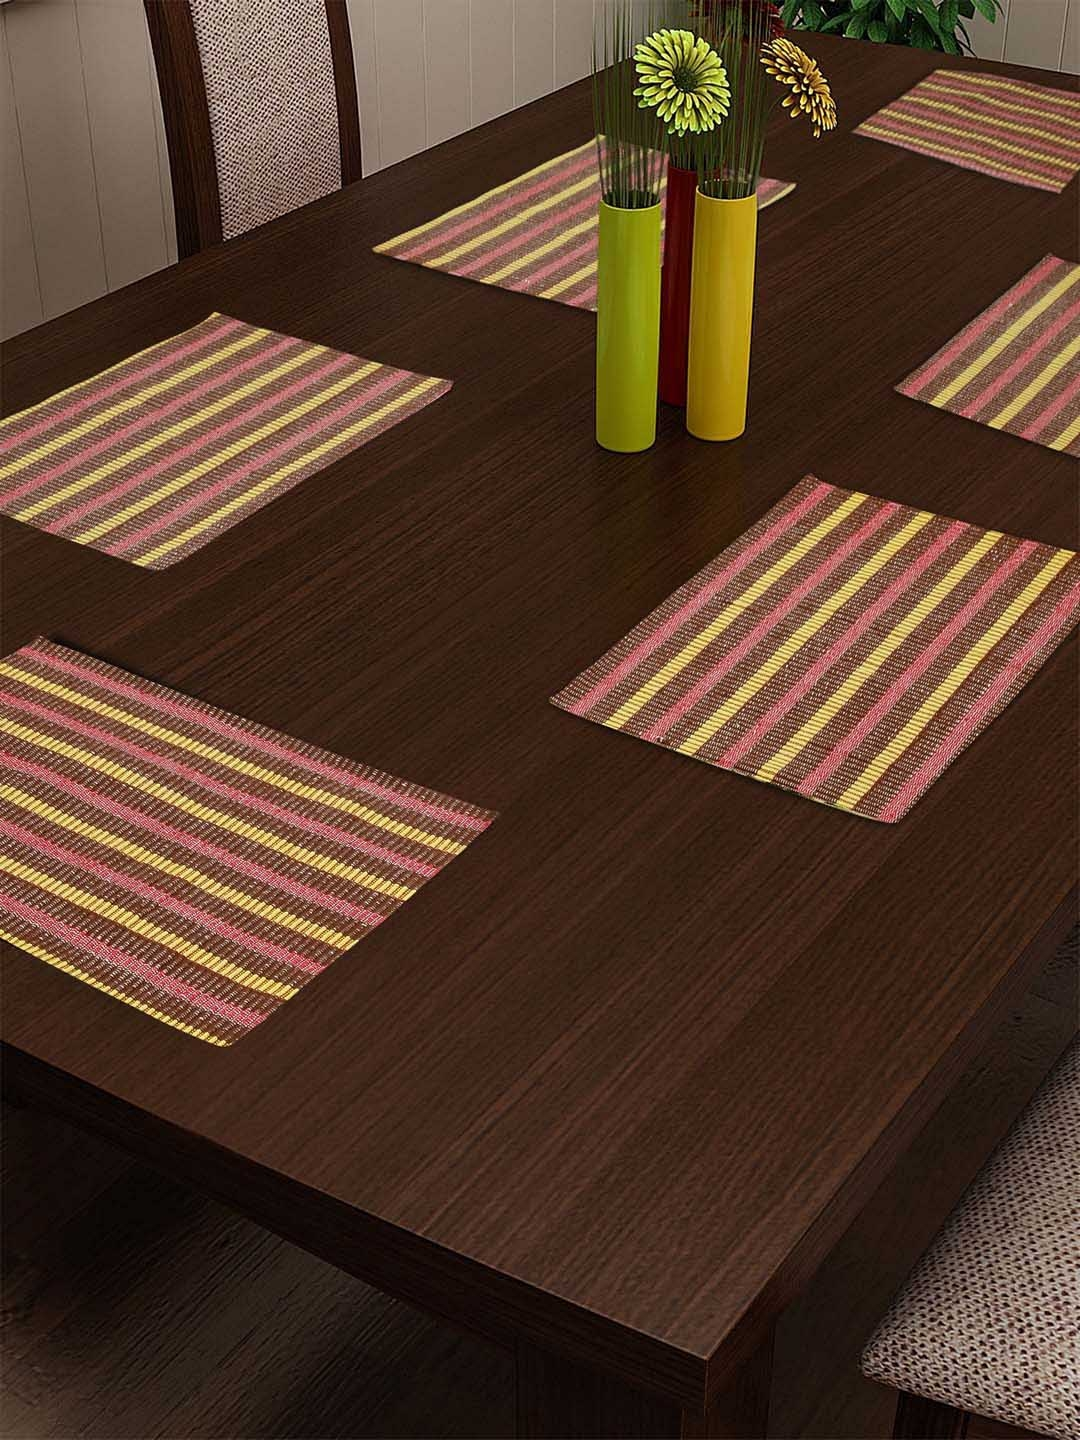 KLOTTHE Brown   Red Set of 6 Striped Table Placemats